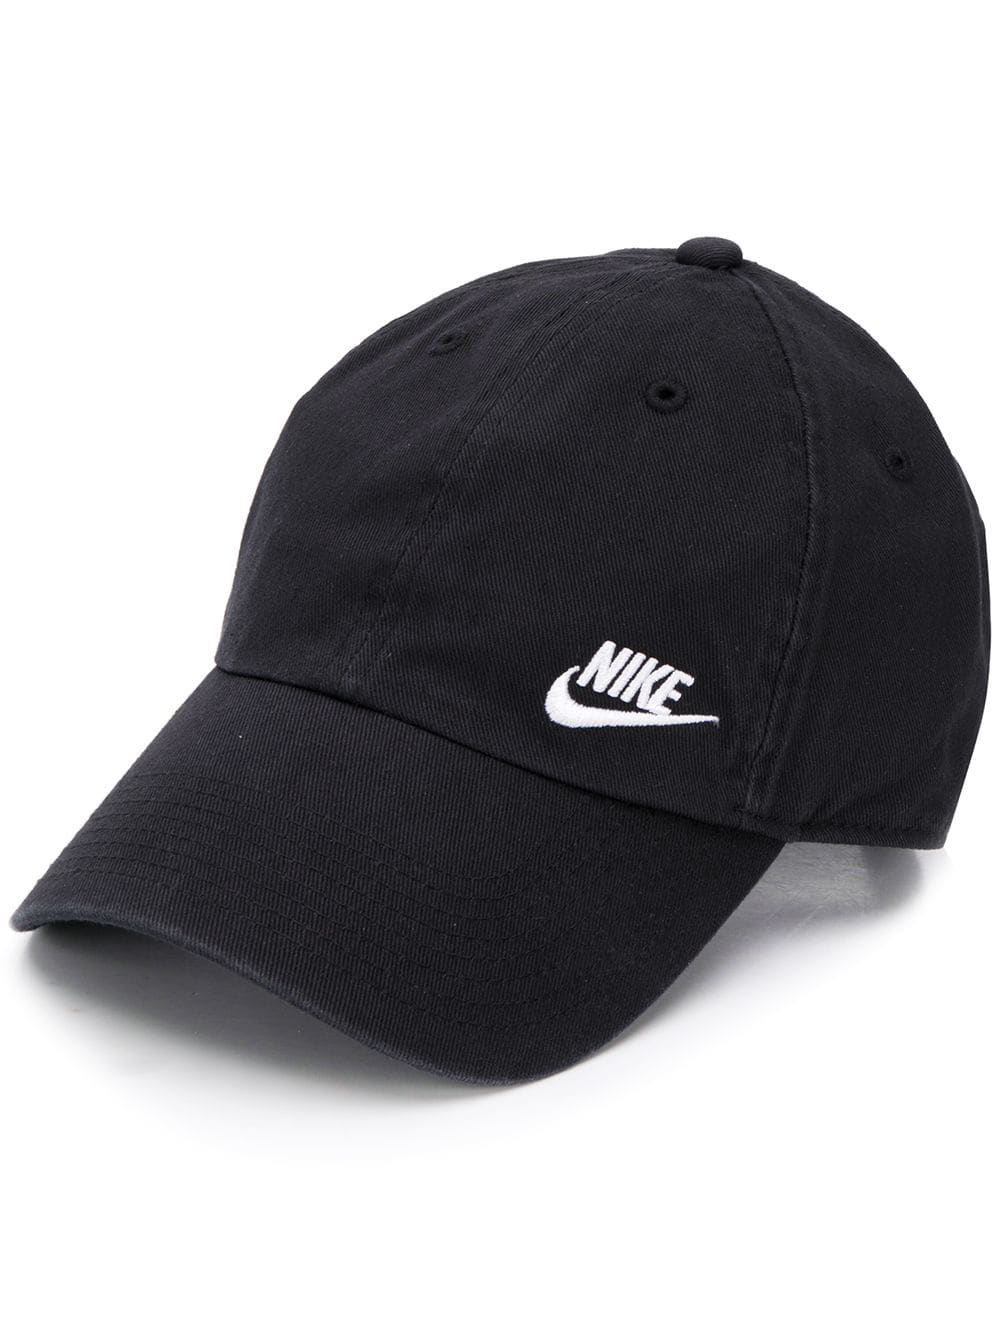 Nike Embroidered Logo Cap In Black